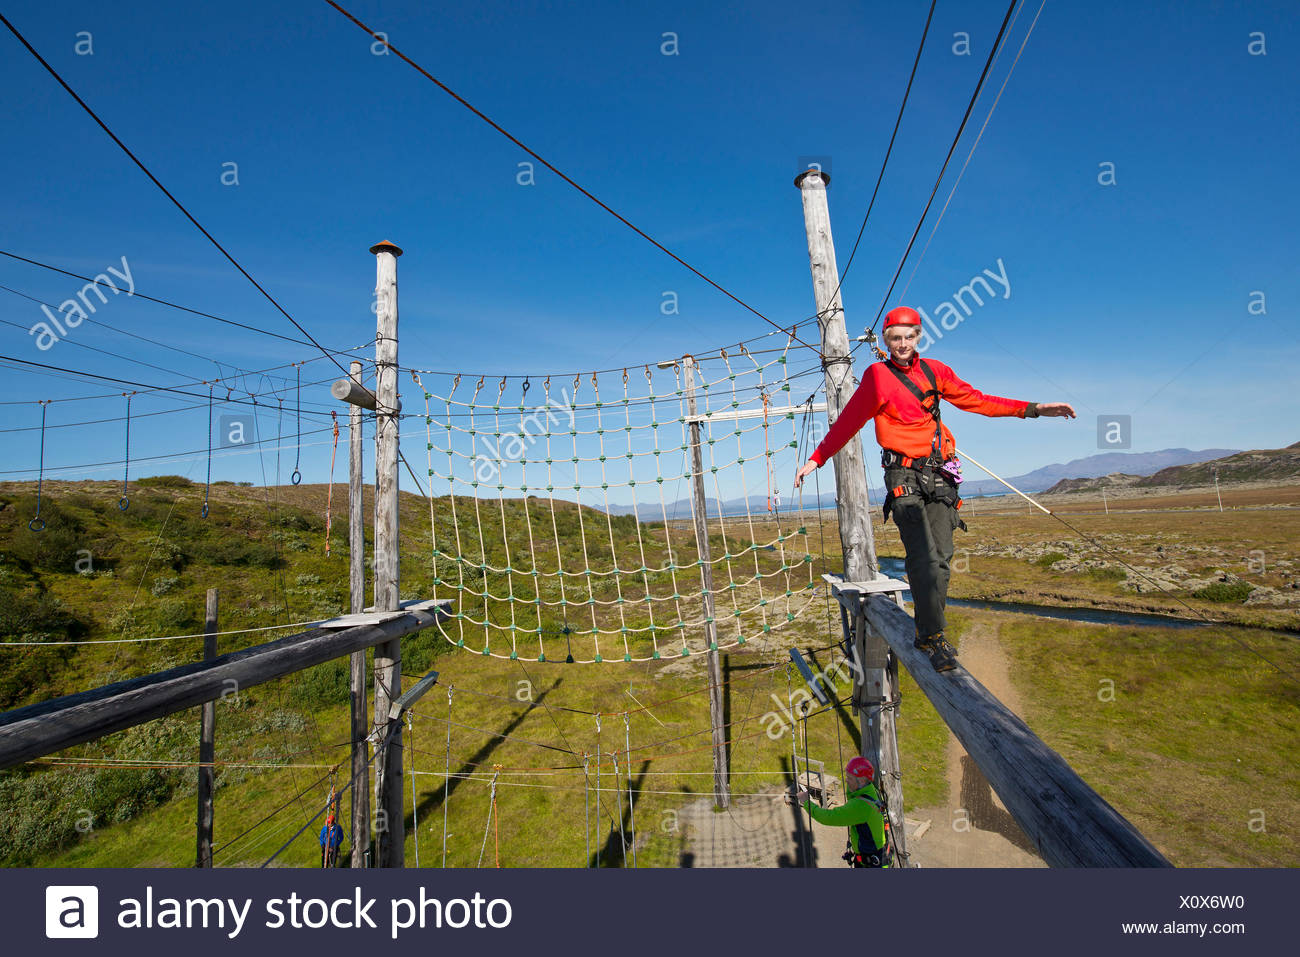 Teenage boy balancing on wooden plank on high rope course - Stock Image